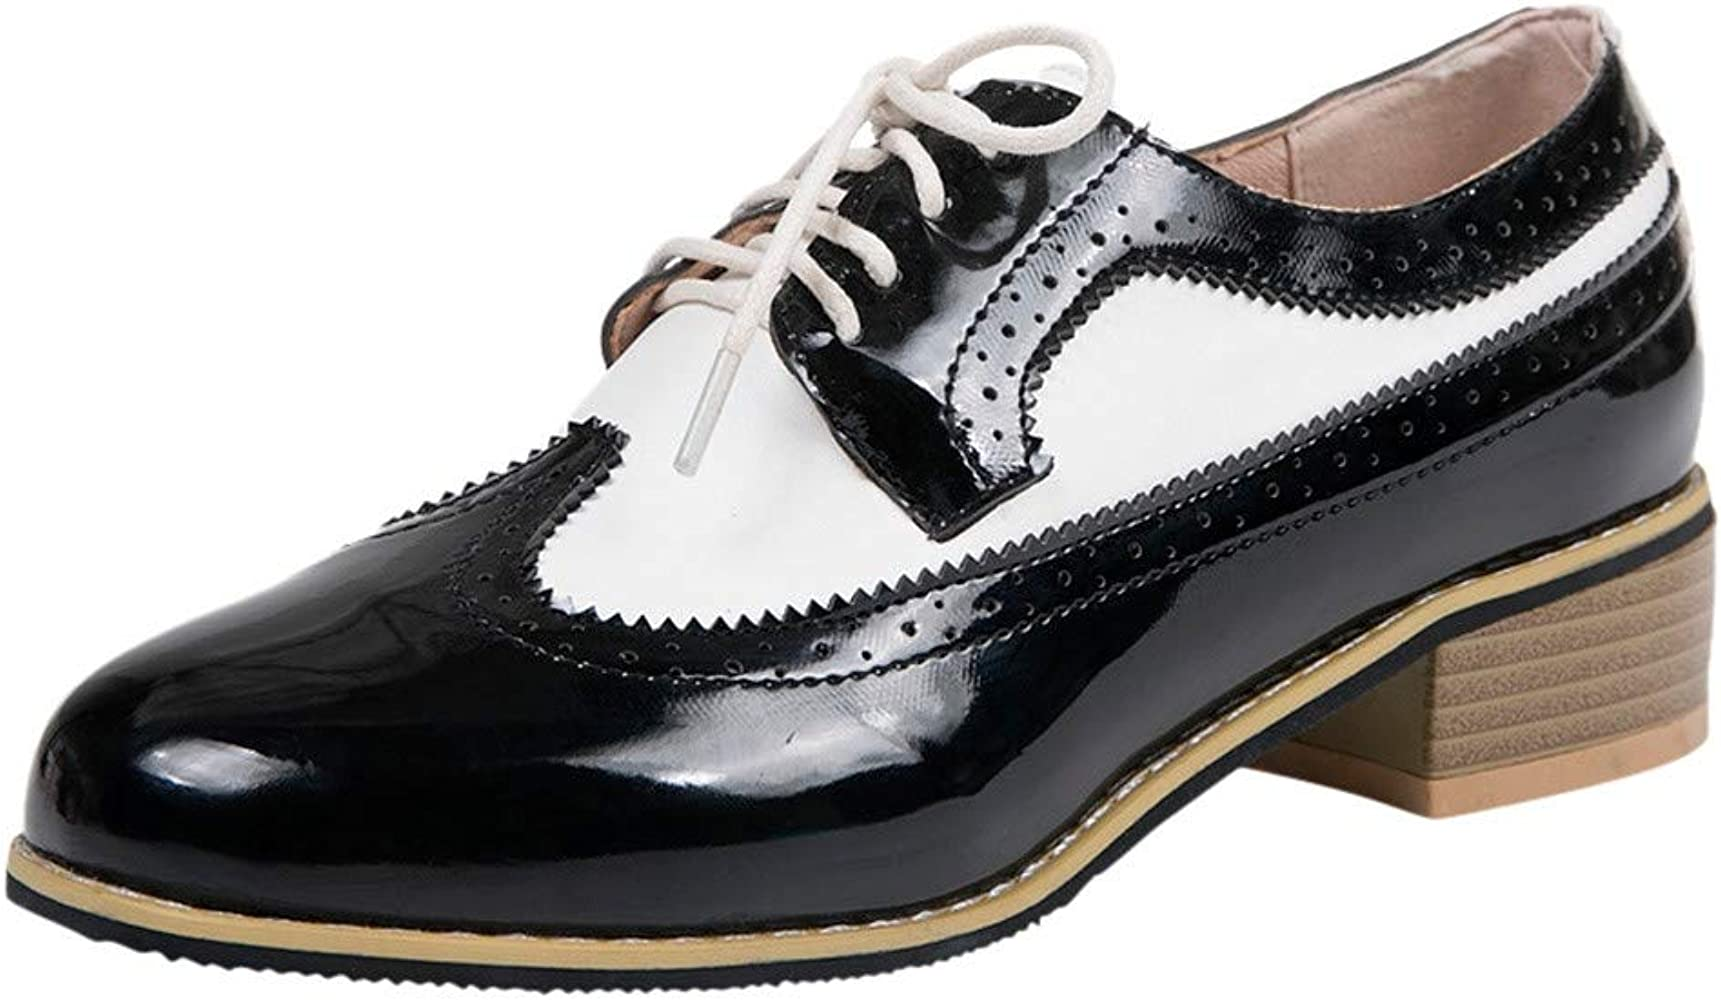 Amazon.com: Oxford Shoes for Women Classic Lace Up Dress Shoes Vintage  Brogue Carved Thick Chunky Heel Elegant Office Shoes: Clothing